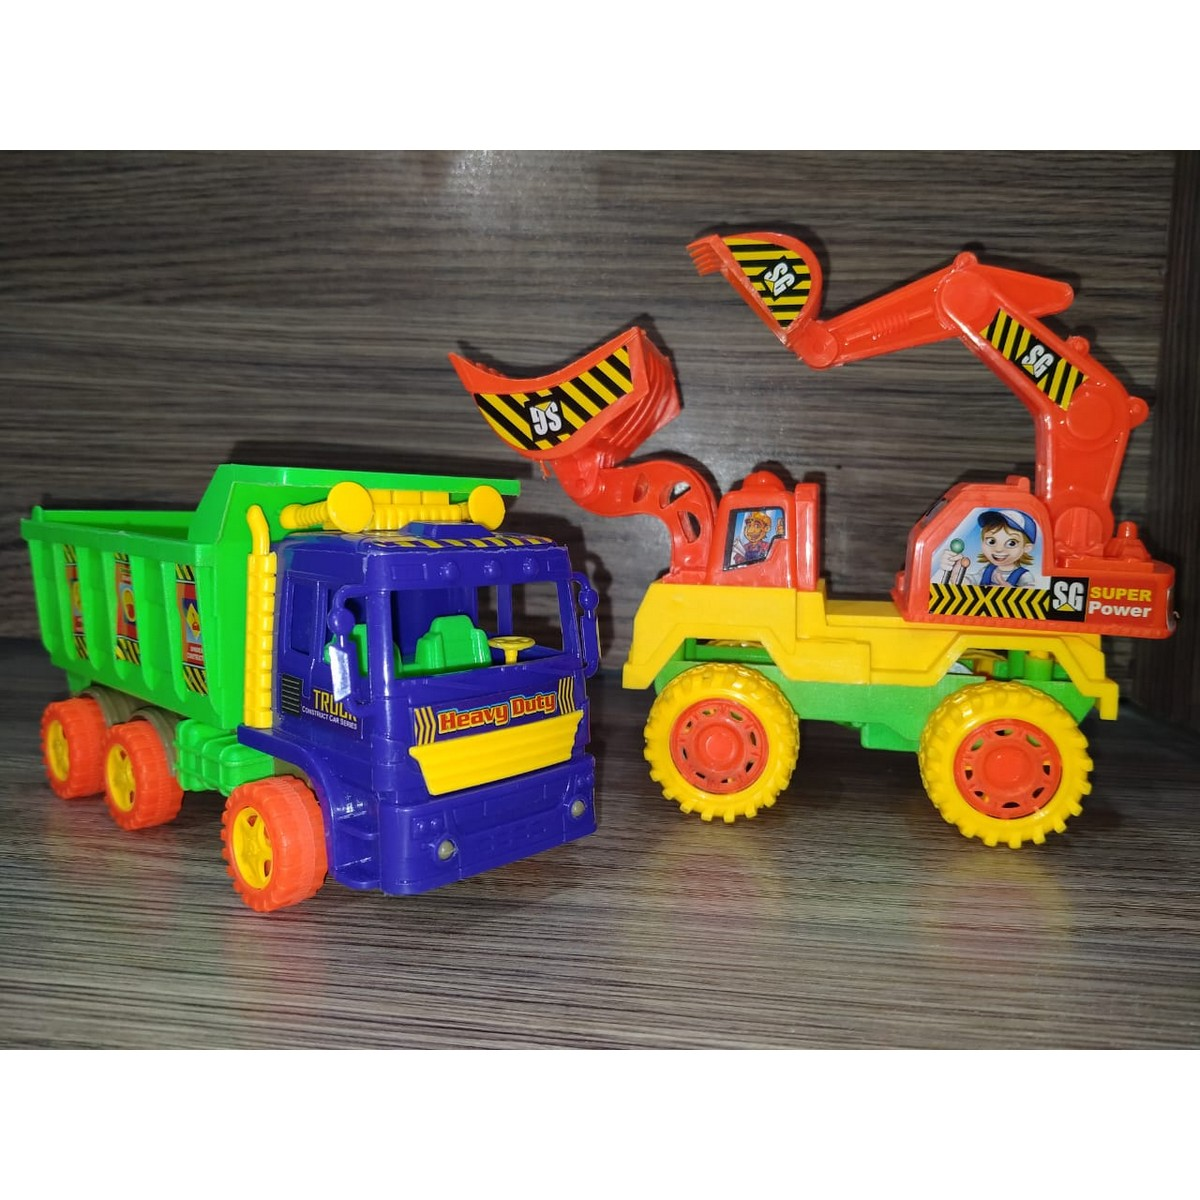 Pack of 2 Toys: 1 Dumper Truck + 1Construction Crane – Beautiful Excavator & Jack Truck -Friction Powered Mini Loader – Beautiful Construction Toys set for Kids